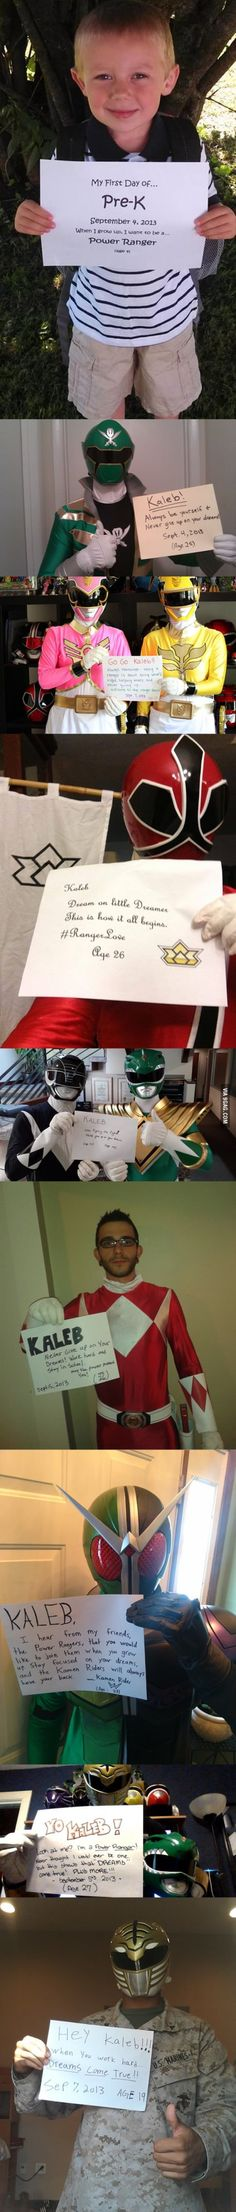 So this kid wants to grow up to be a Power Ranger. The Power Rangers approve.